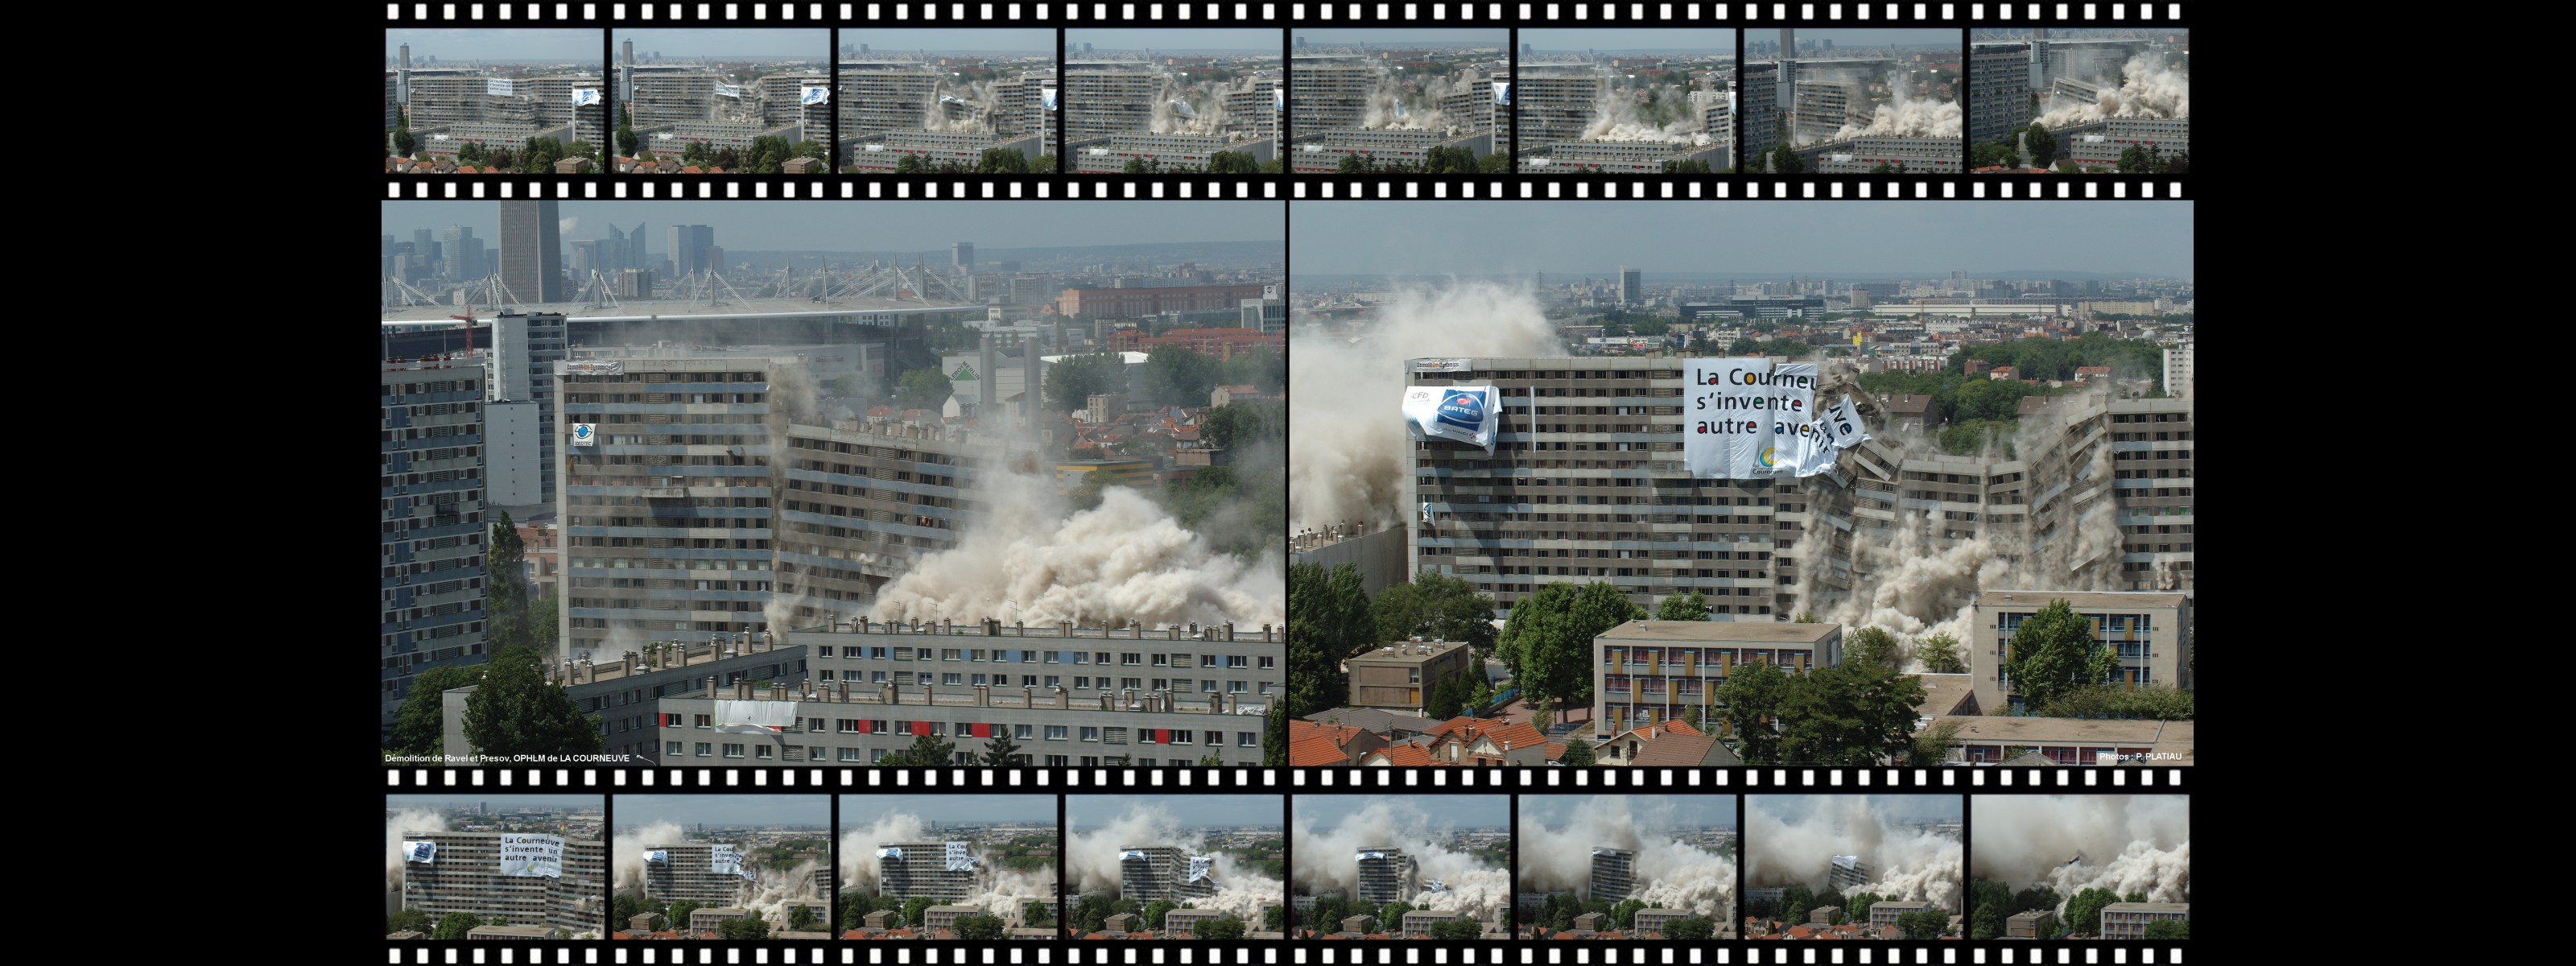 http://grrroux.free.fr/misc/demolition-wallpaper.jpg